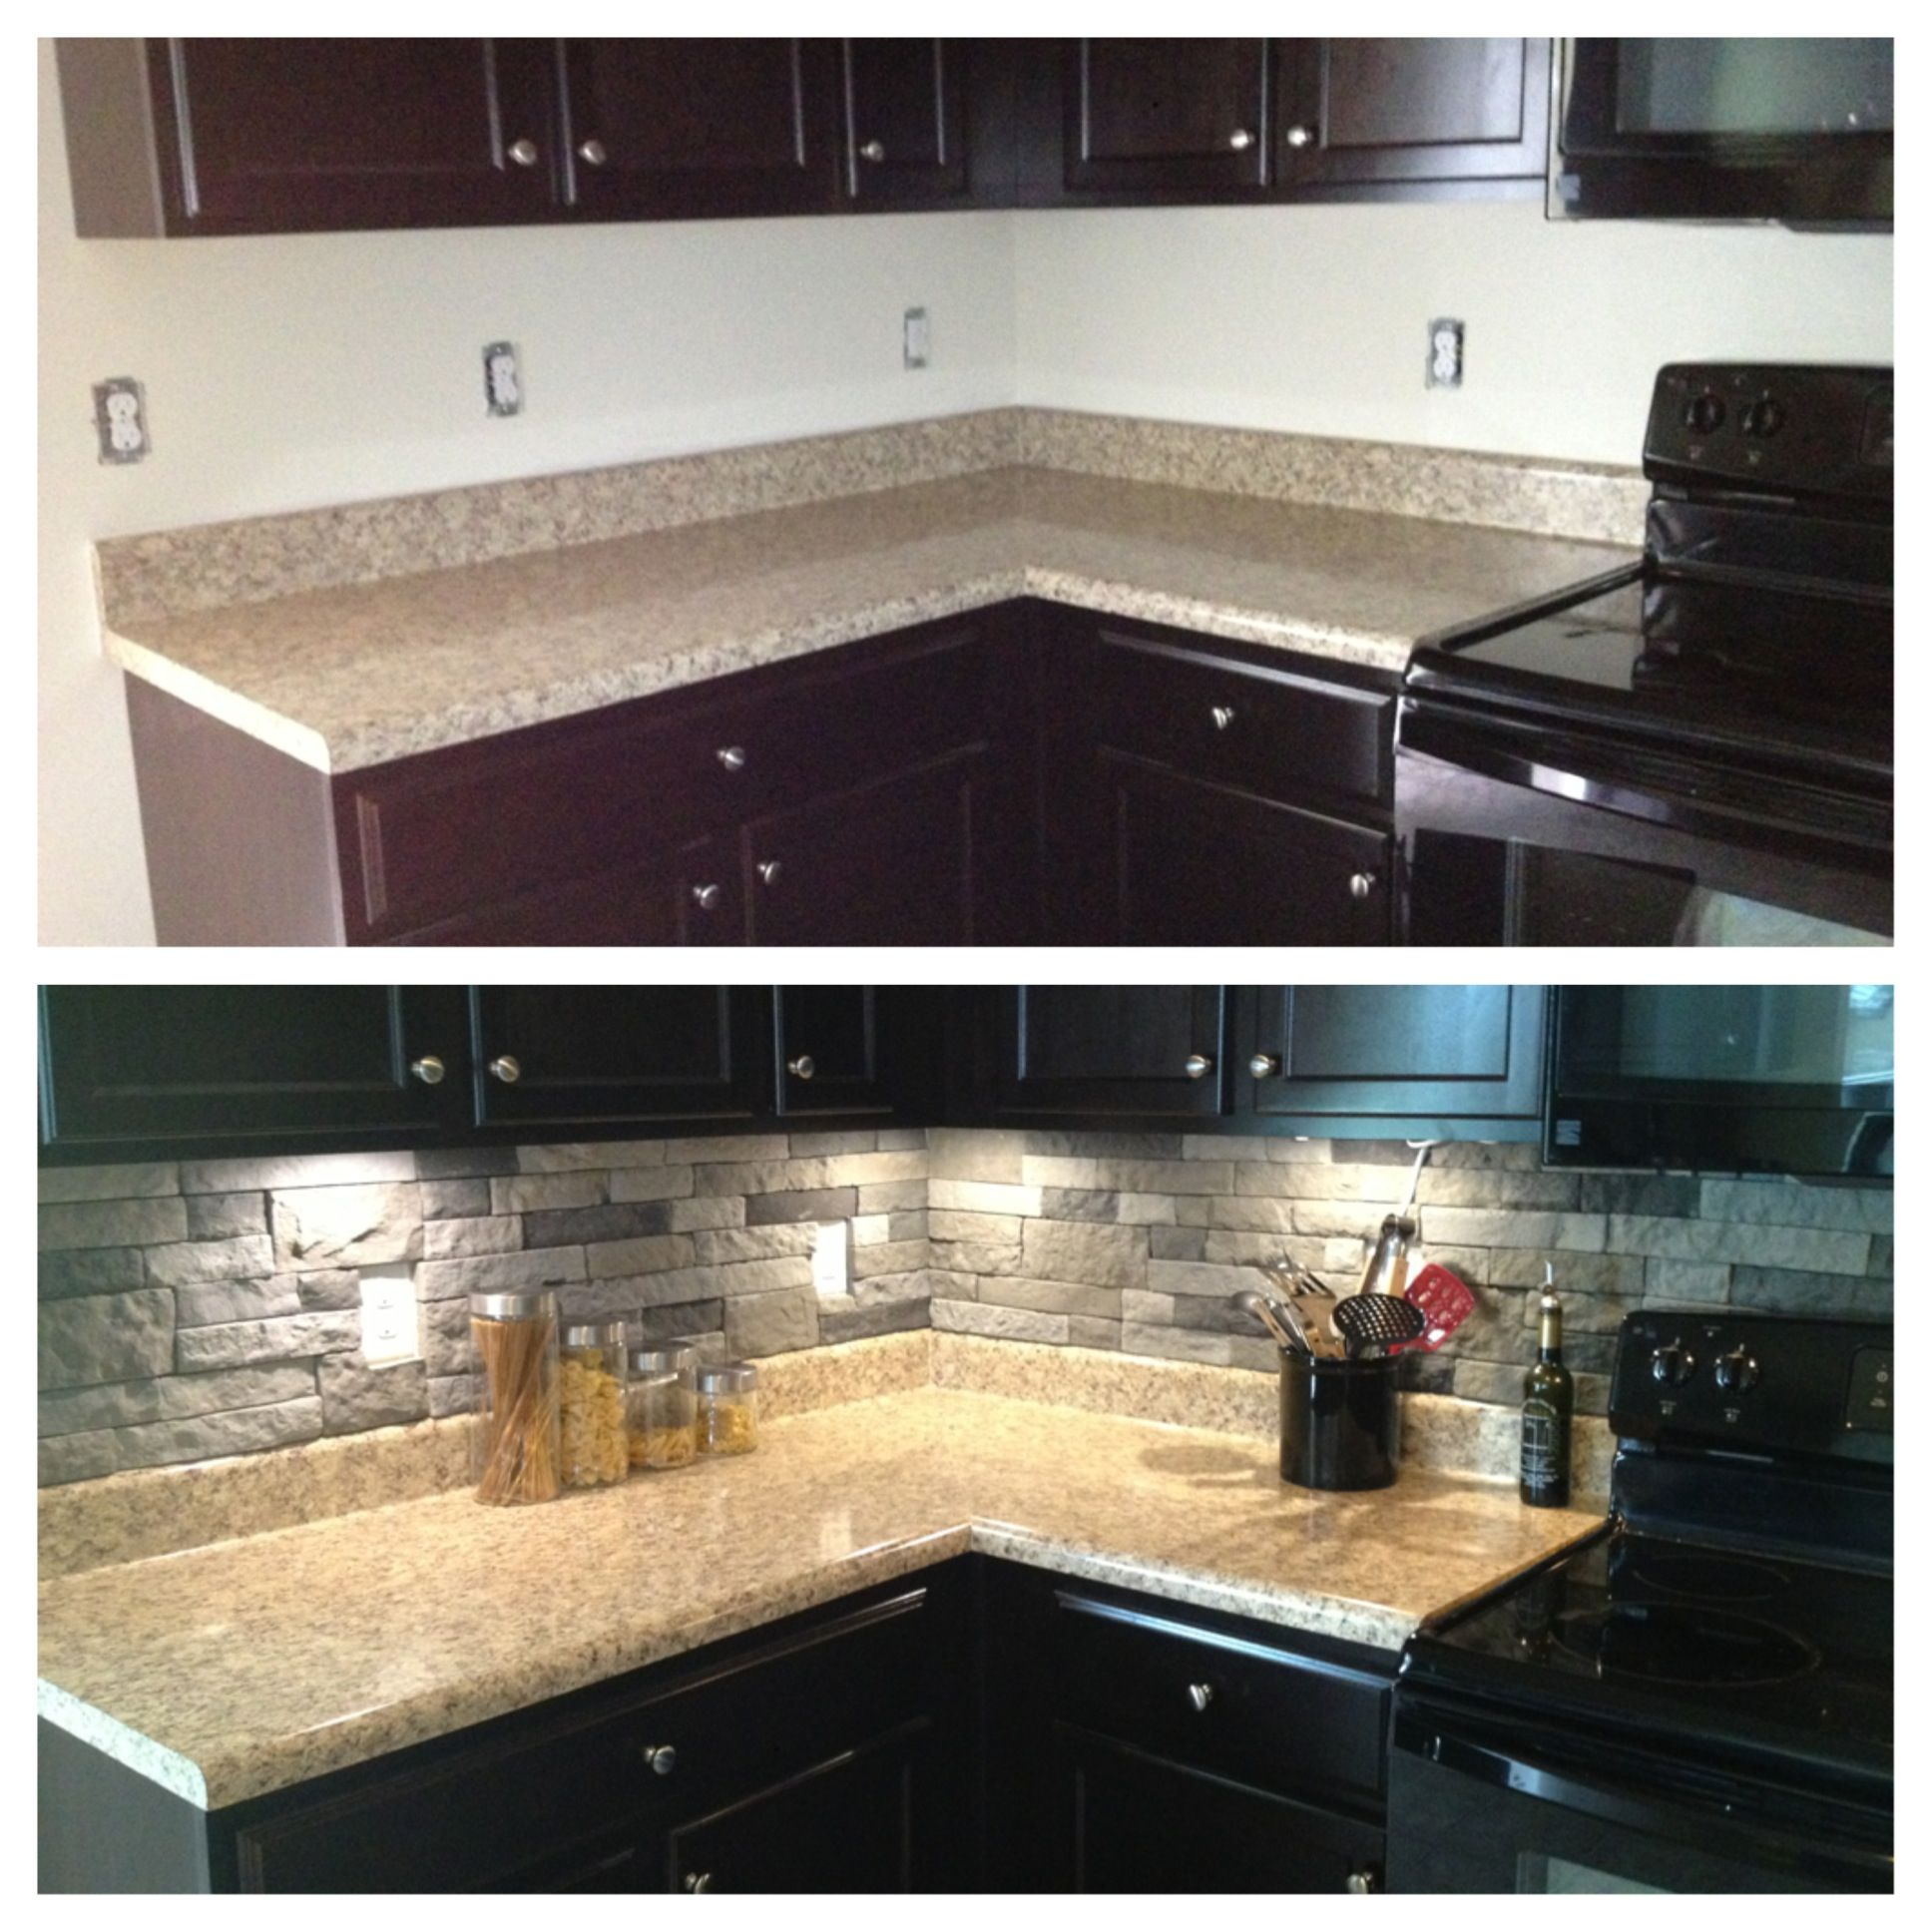 Aspect 6 x 24 inch autumn sandstone peel and stick stone backsplash - I Really Like The Black Cabinets And Gray Stone Wall But The Beige Countertop Not So Much